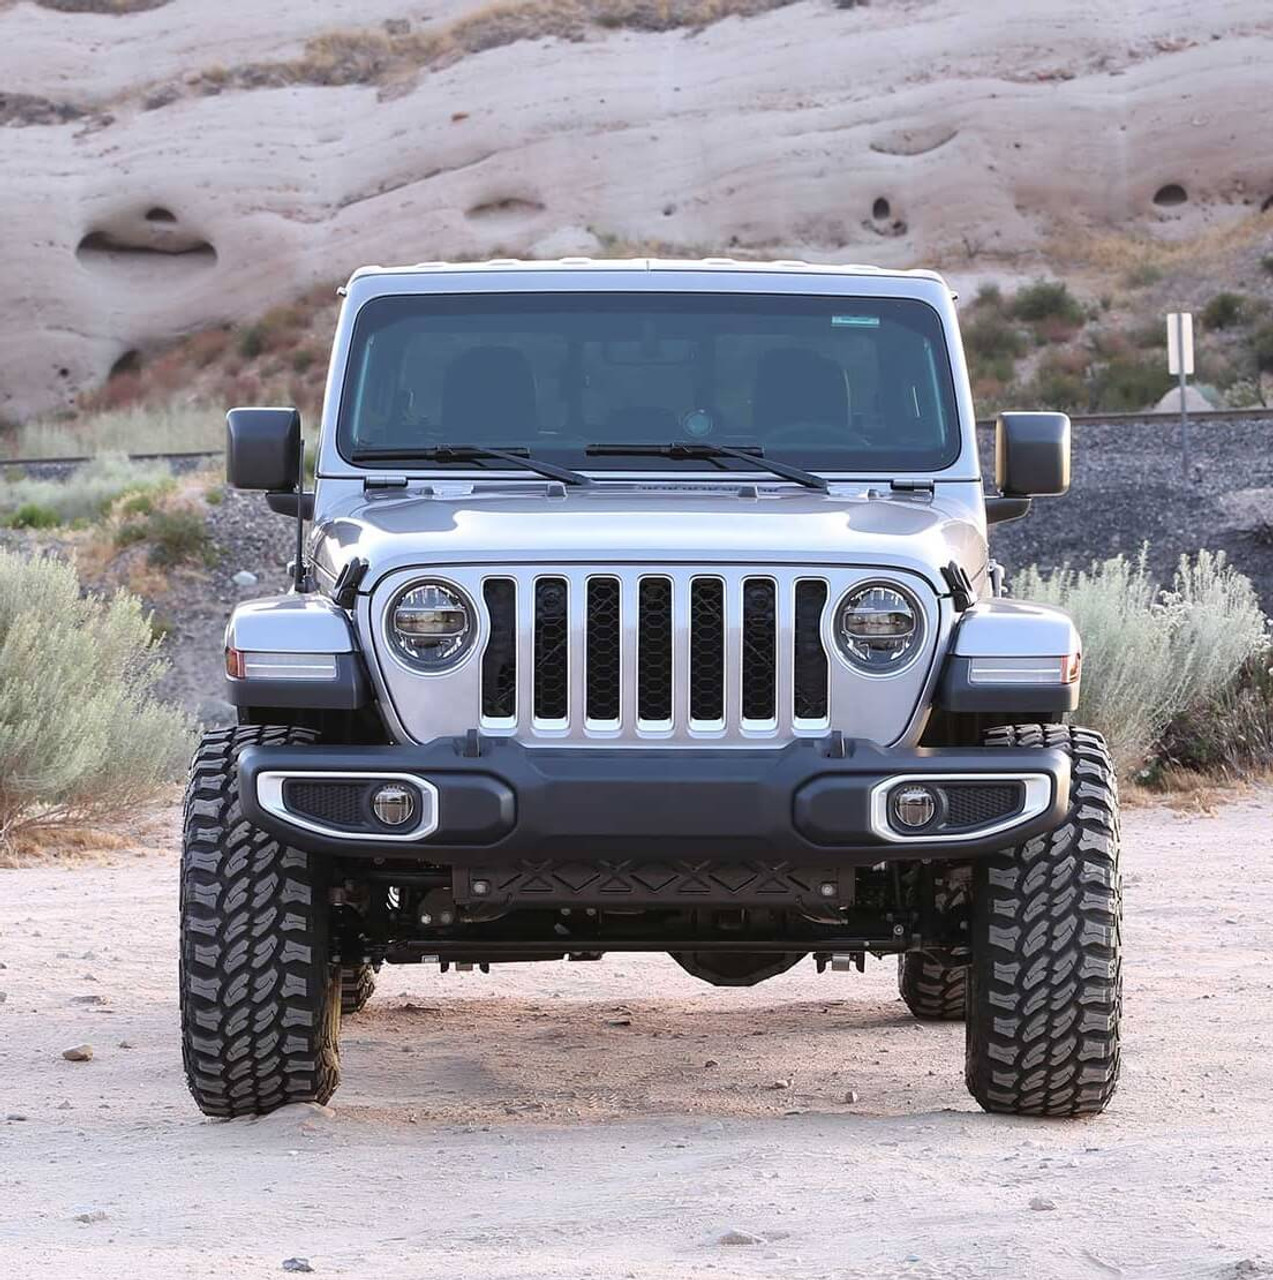 """Fabtech 5"""" Trail Lift Kit With Stealth Shocks For Jeep Gladiator - K4175M"""